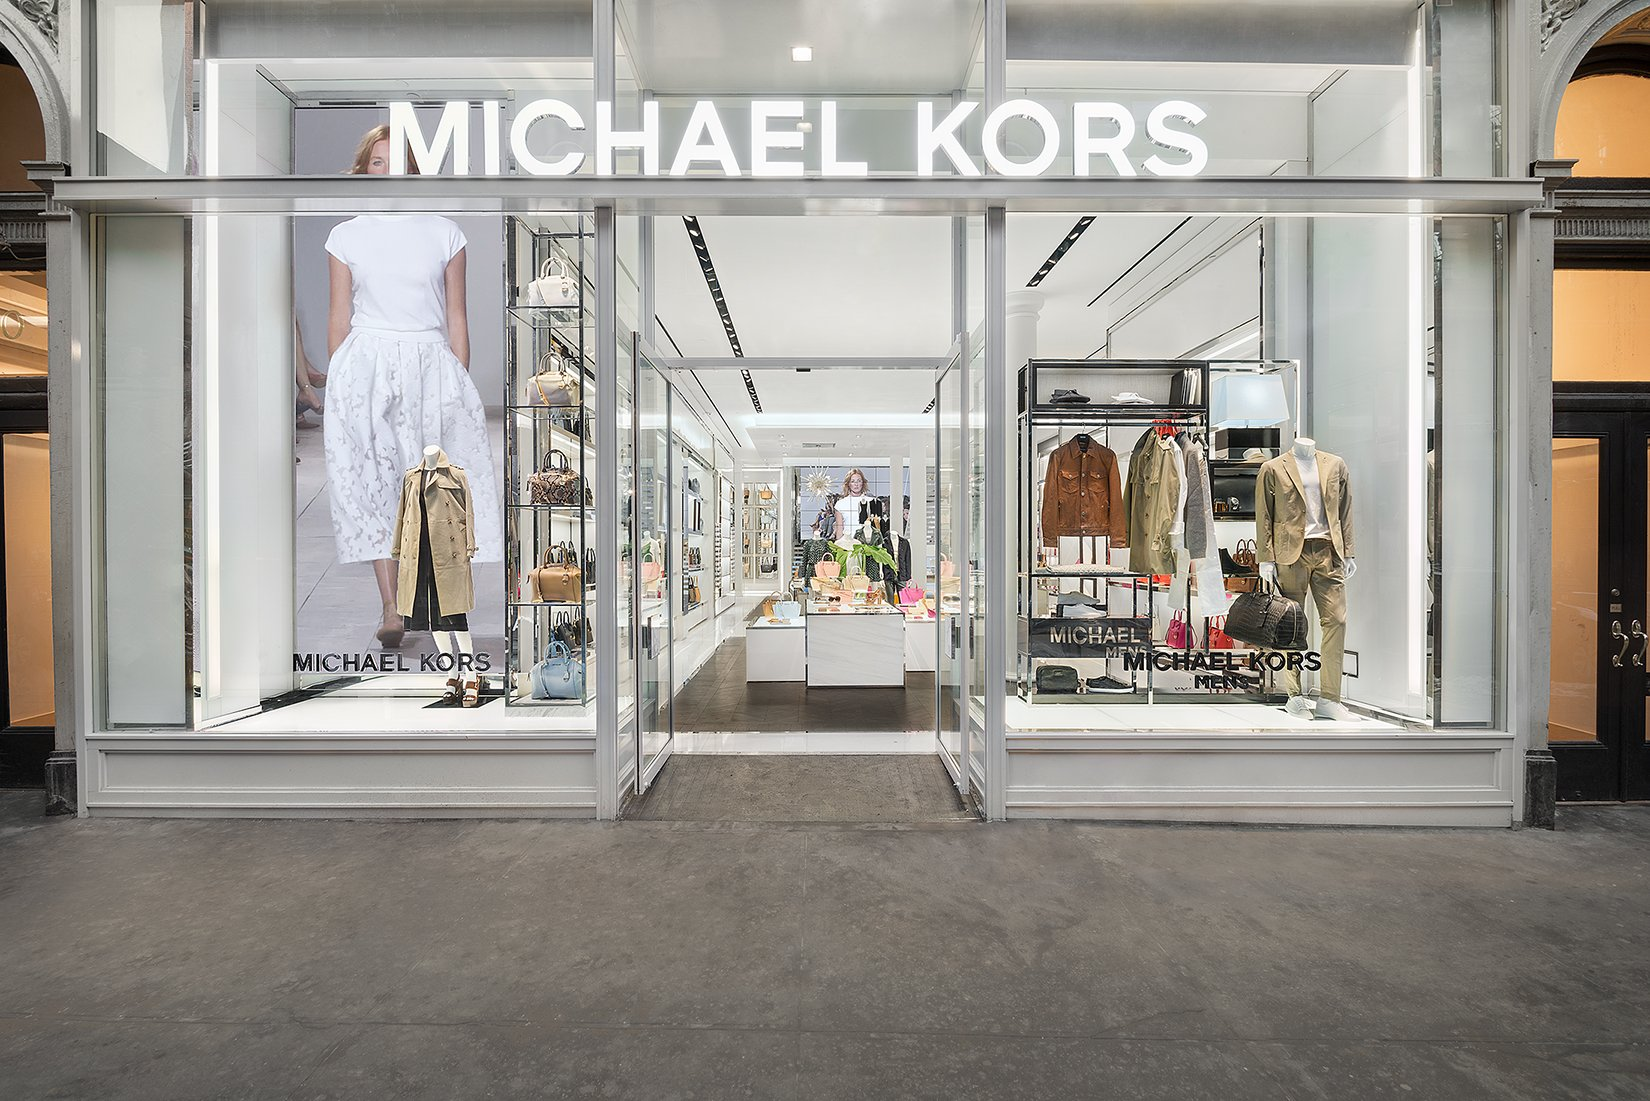 michael kors locations in turkey designer handbags clothing watches and shoes. Black Bedroom Furniture Sets. Home Design Ideas